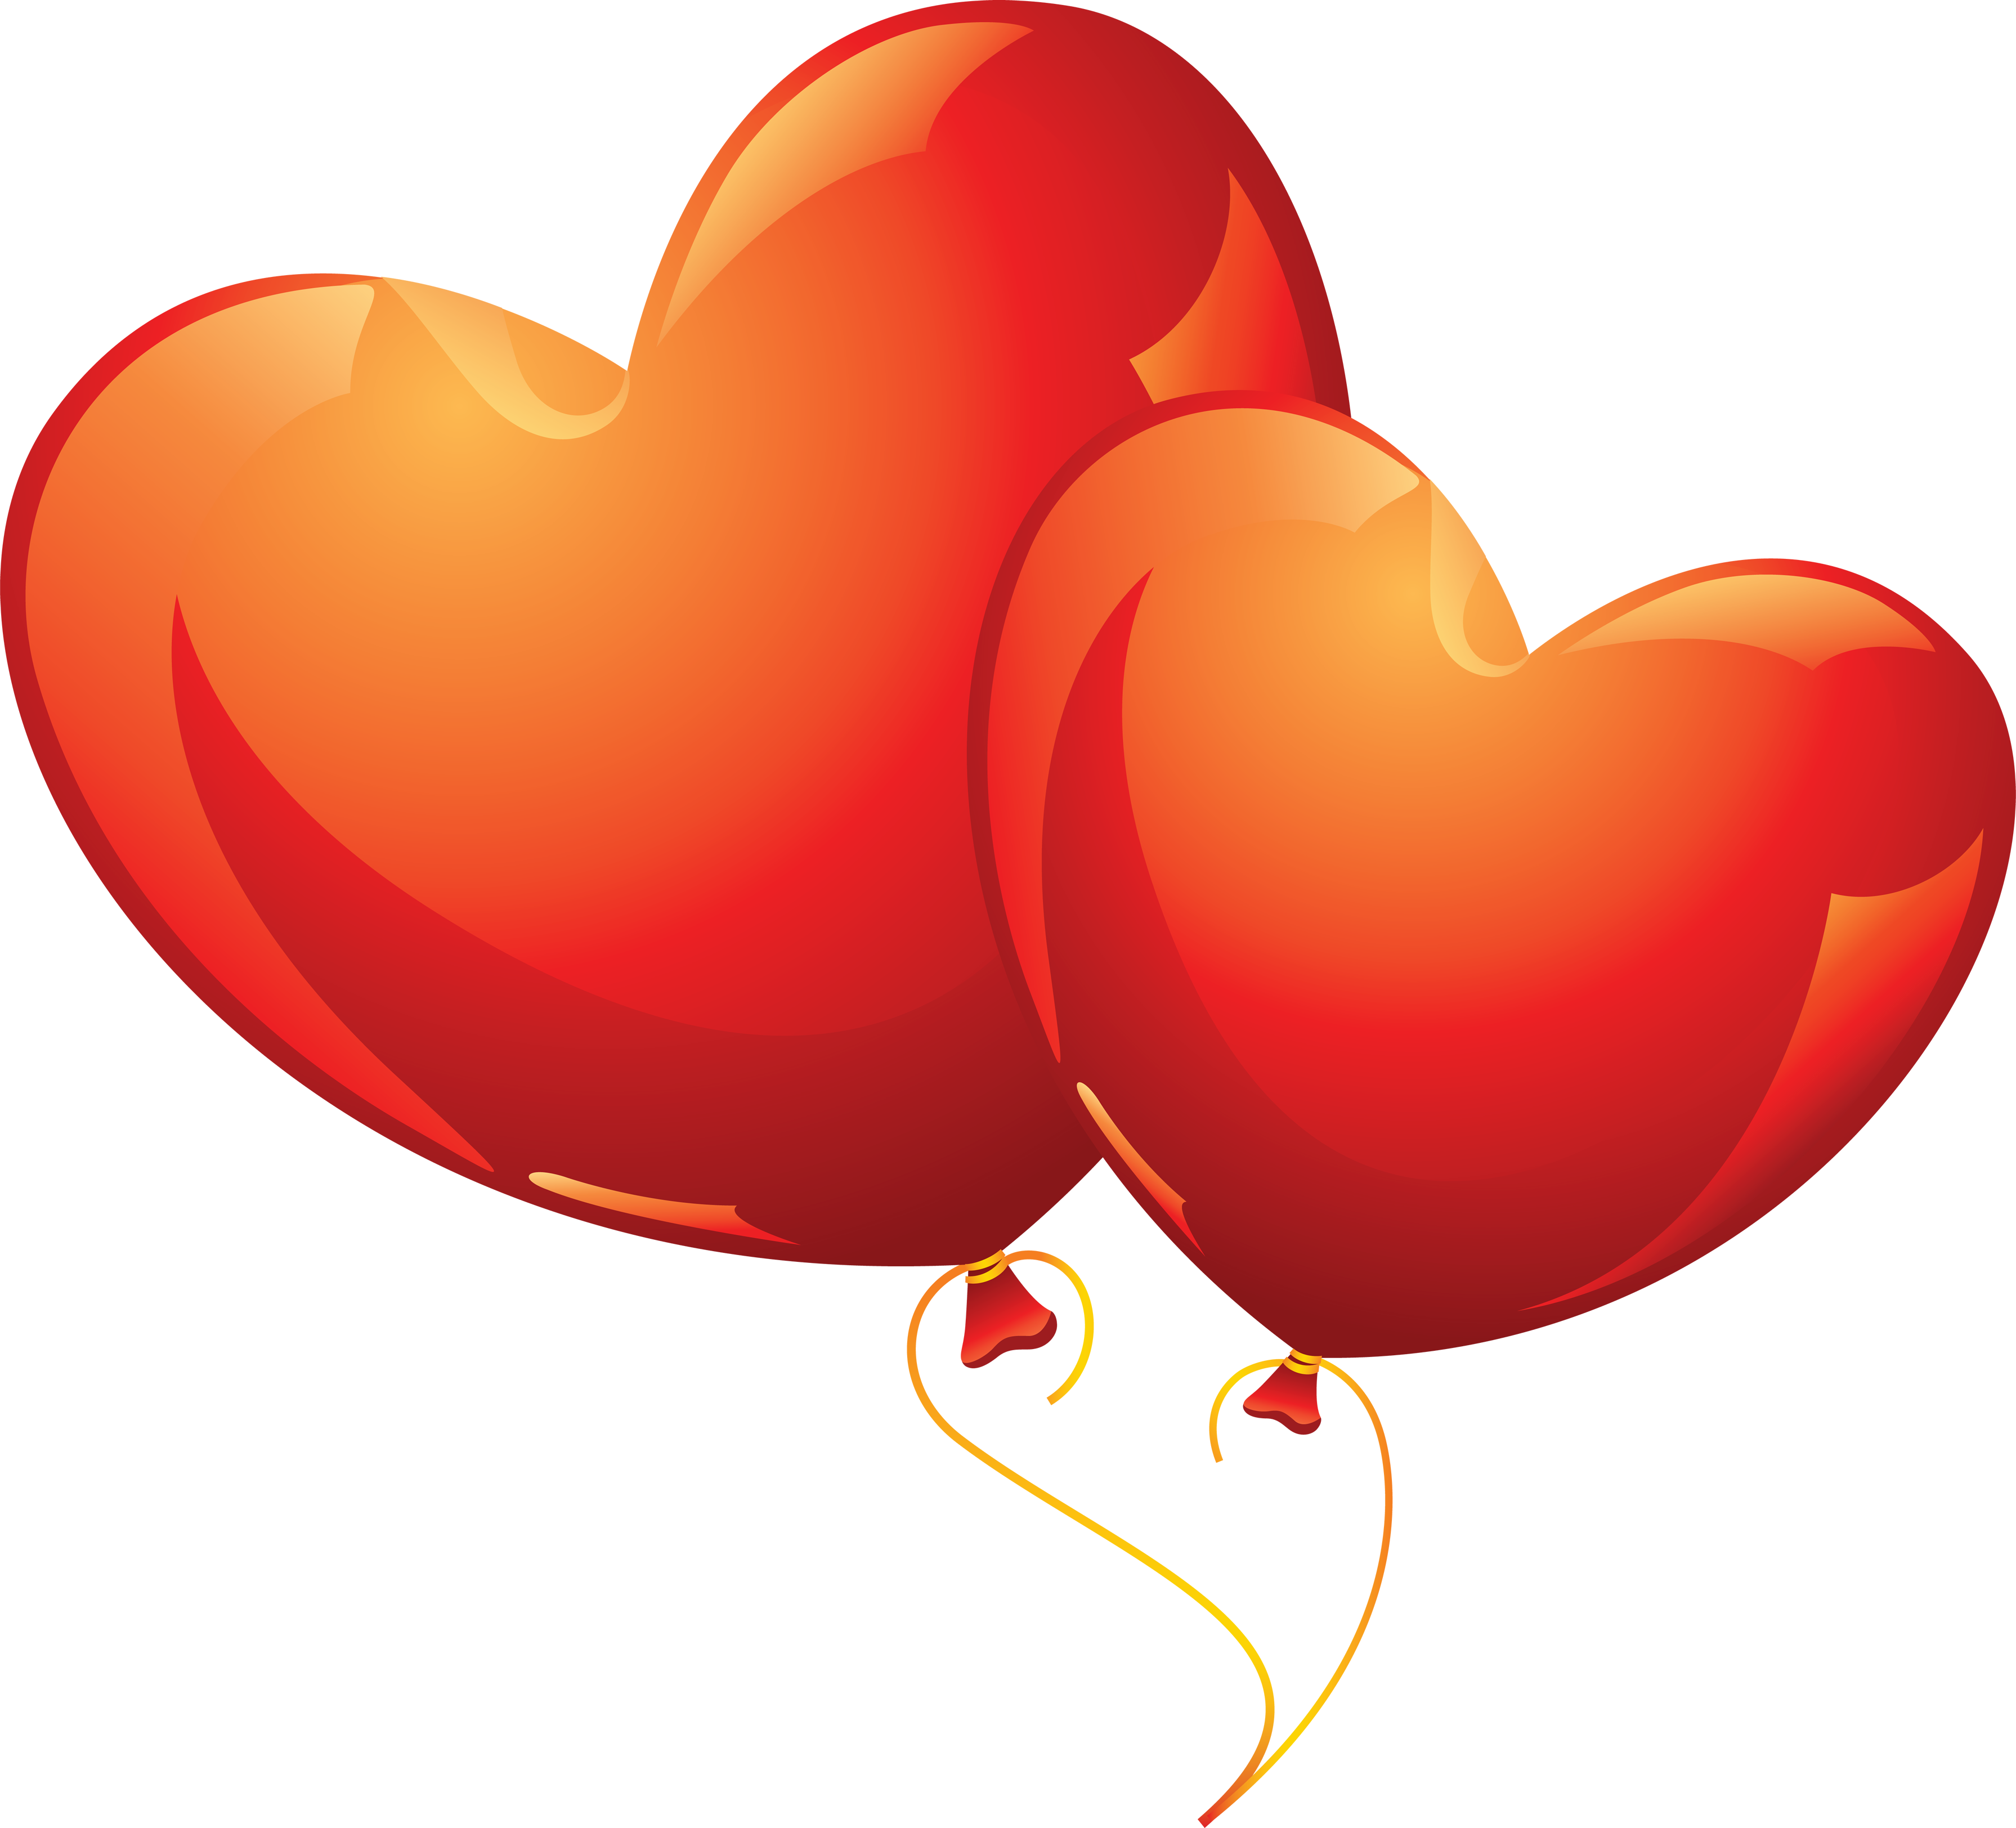 February clipart iloveyou. Fall in love with